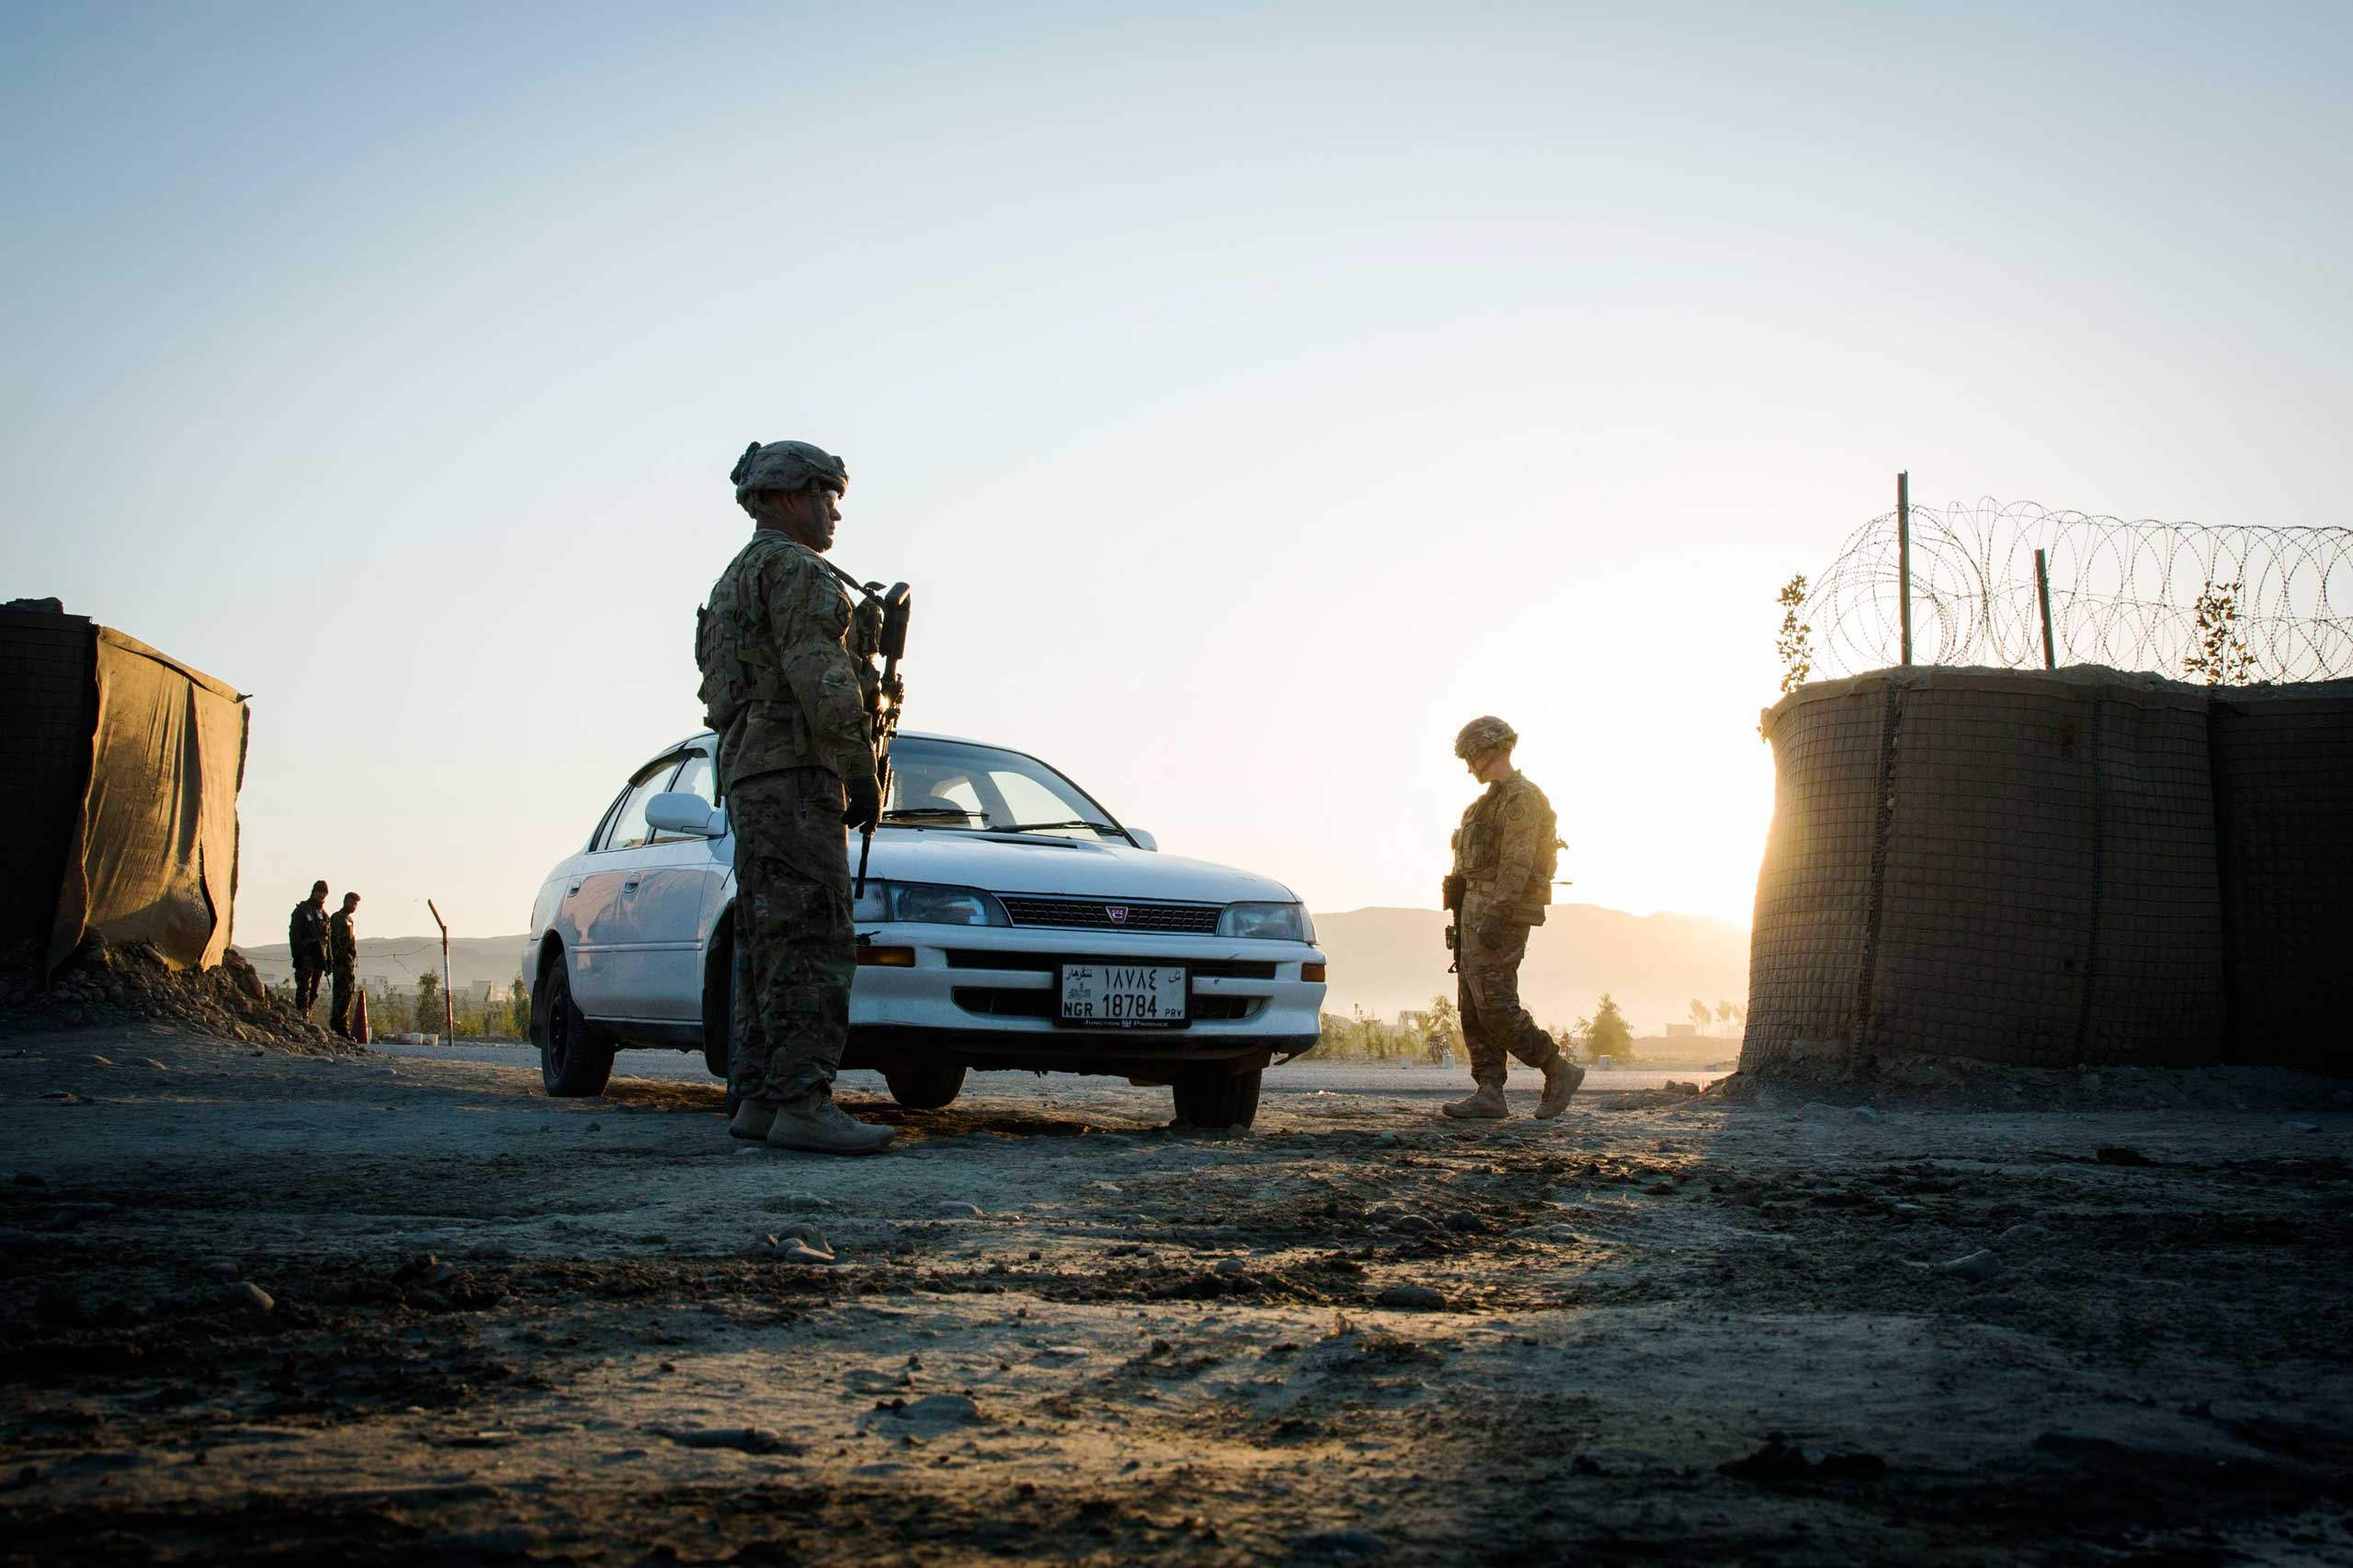 U.S. soldiers from 3rd Cavalry Regiment flag a car to stop to be screened for explosives near forward operating base Gamberi in the Laghman province of Afghanistan on Dec. 14, 2014.